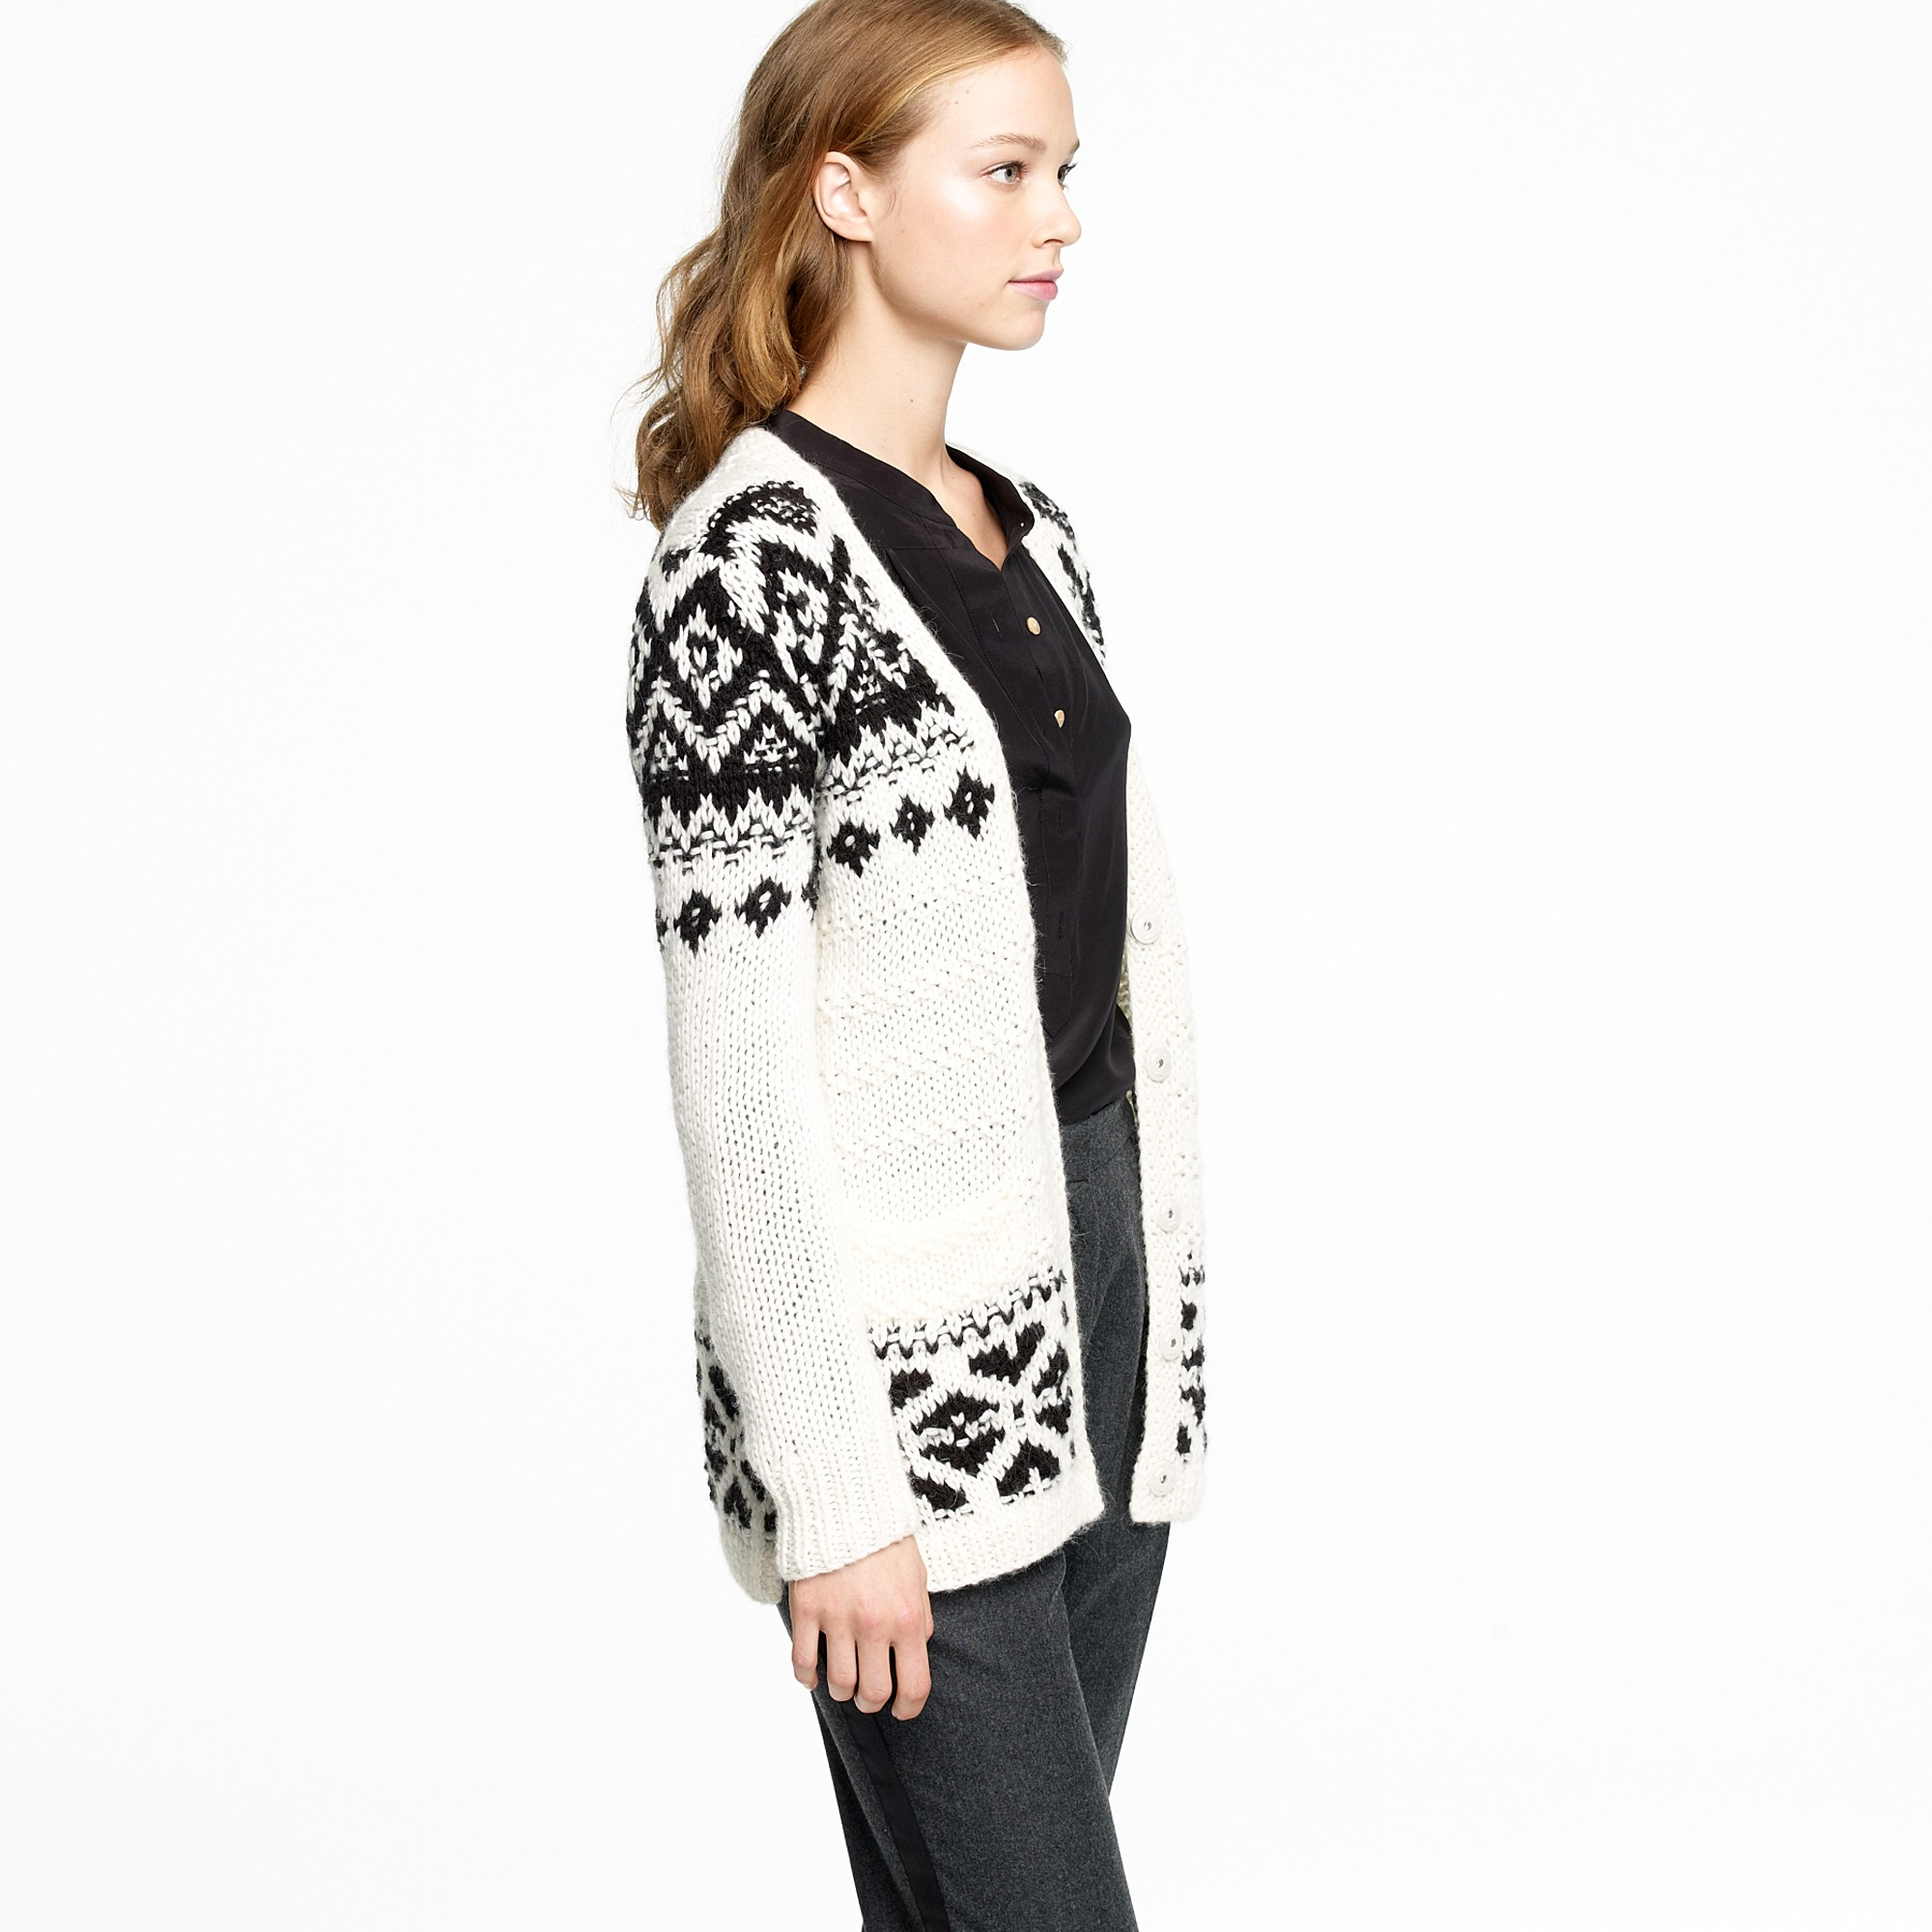 J.crew Oversize Fair Isle Cardigan in Black | Lyst